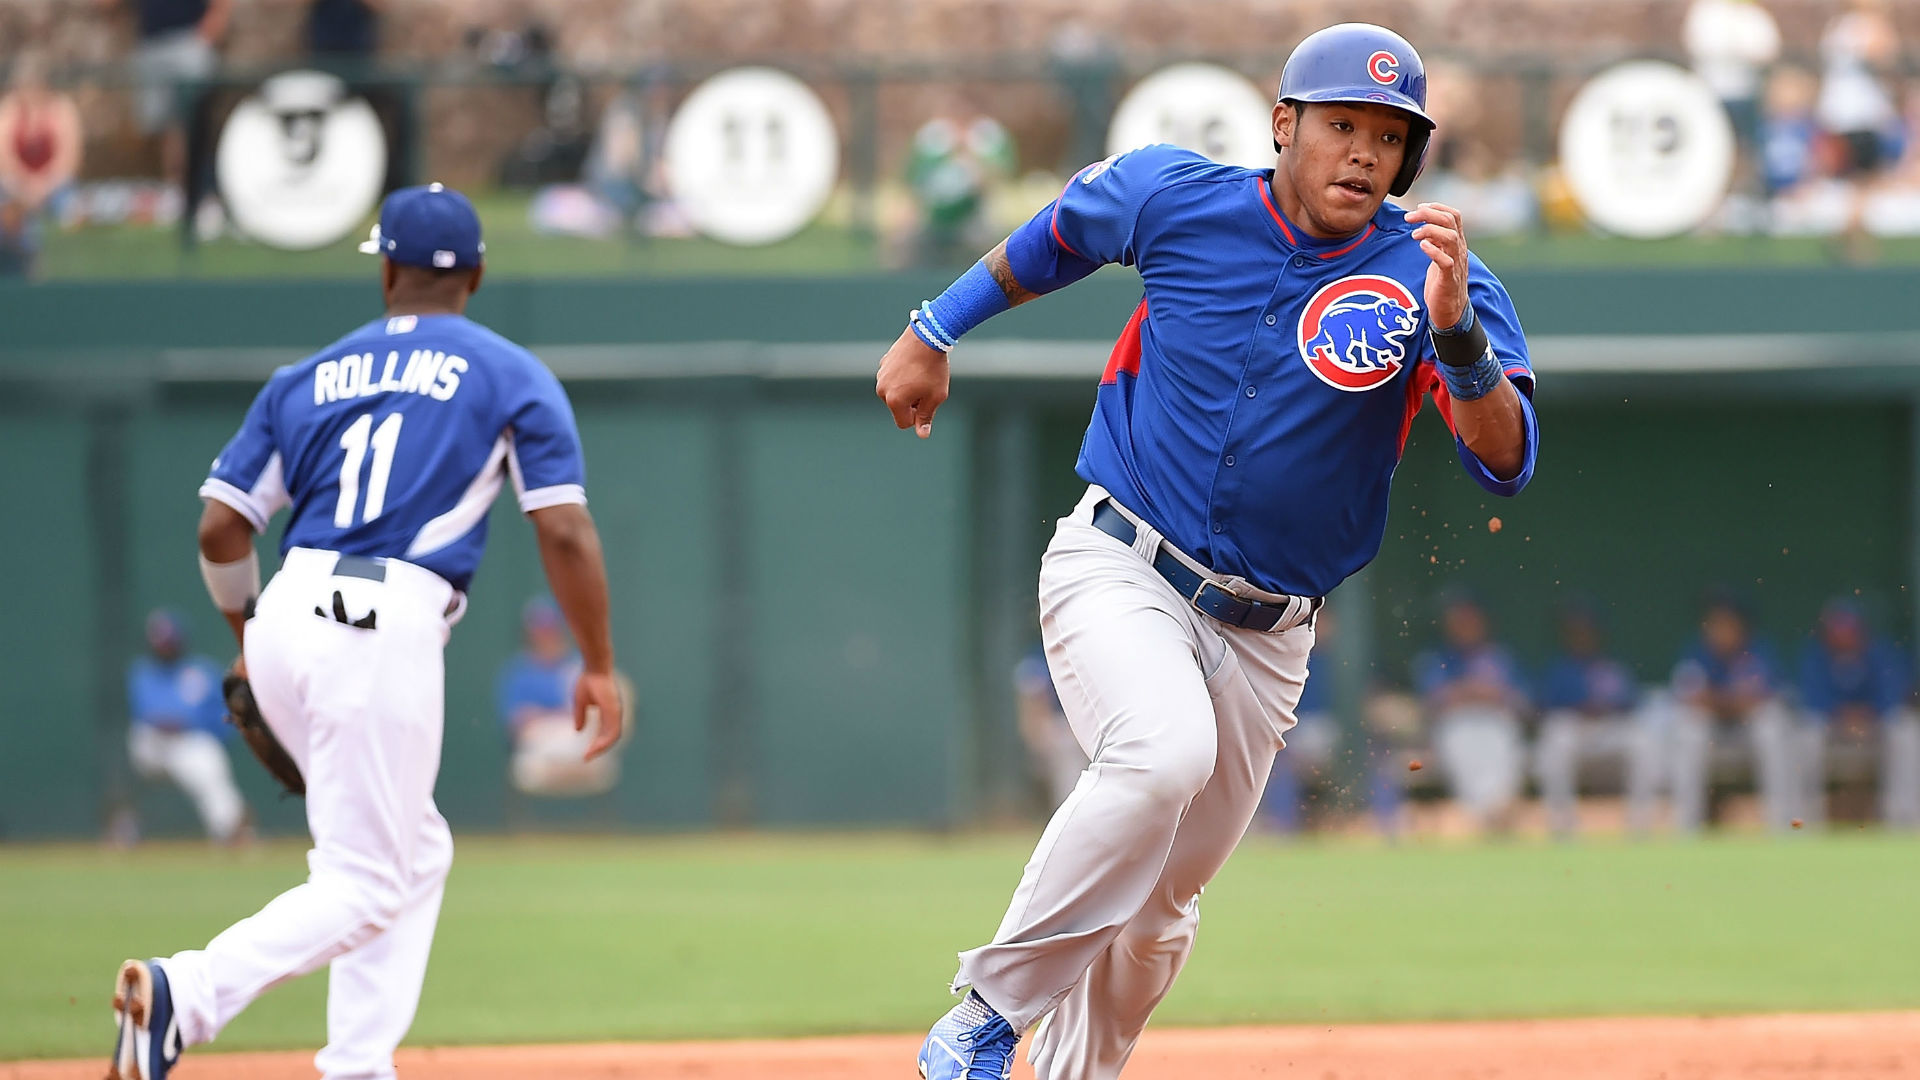 1920x1080 - Addison Russell Wallpapers 22